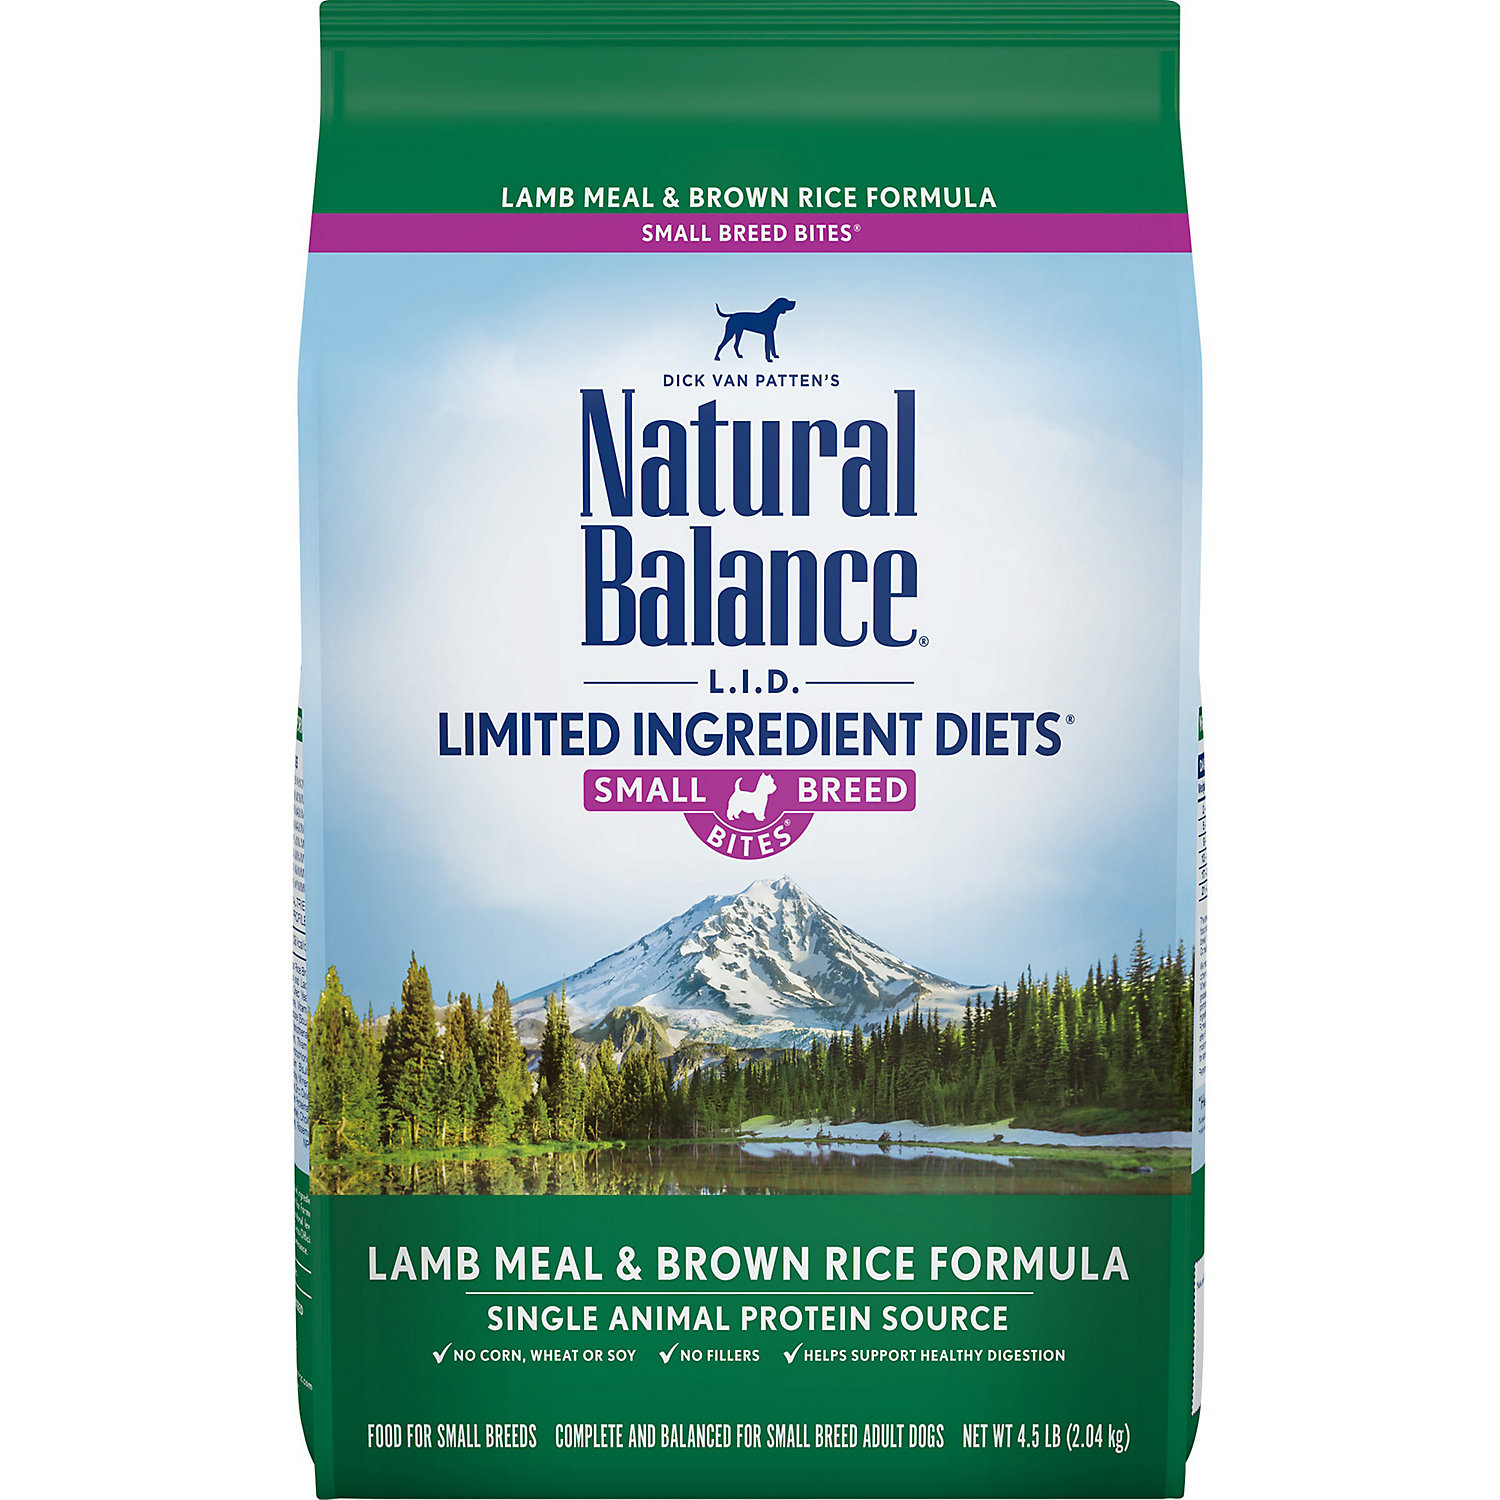 Natural Balance L.i.d. Limited Ingredient Diets Lamb Rice Small Breed Bites Dog Food 4.5 Lbs.